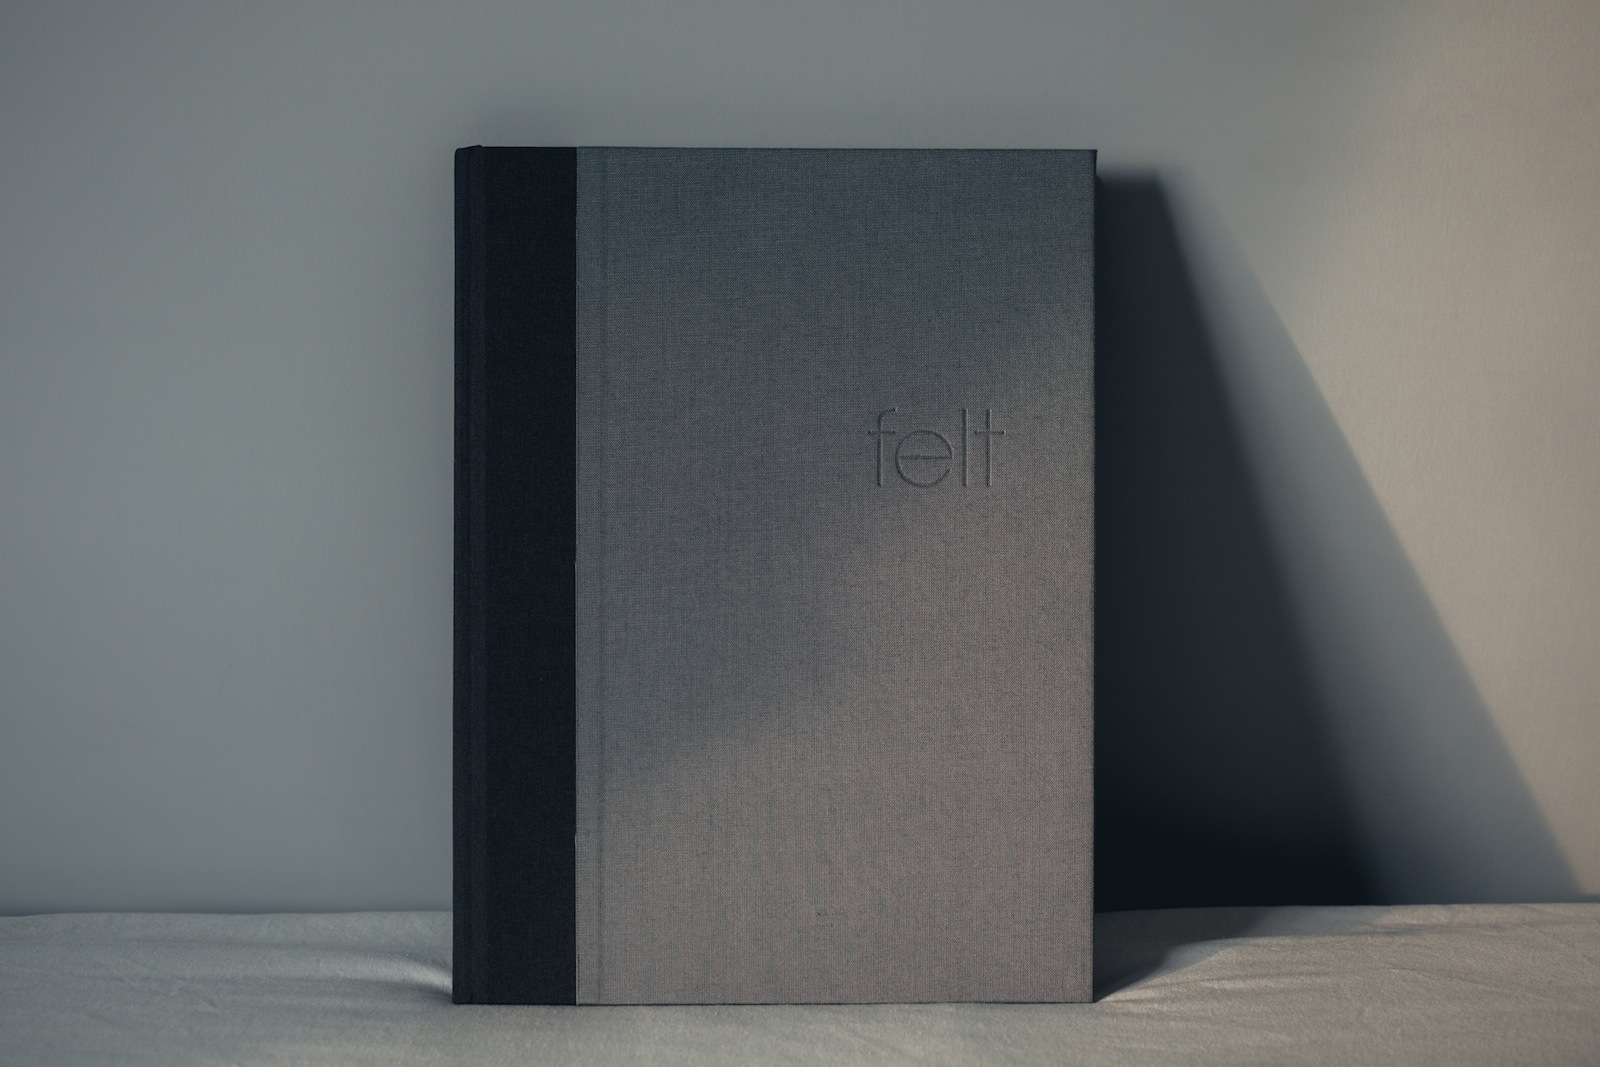 Felt - First Third Books